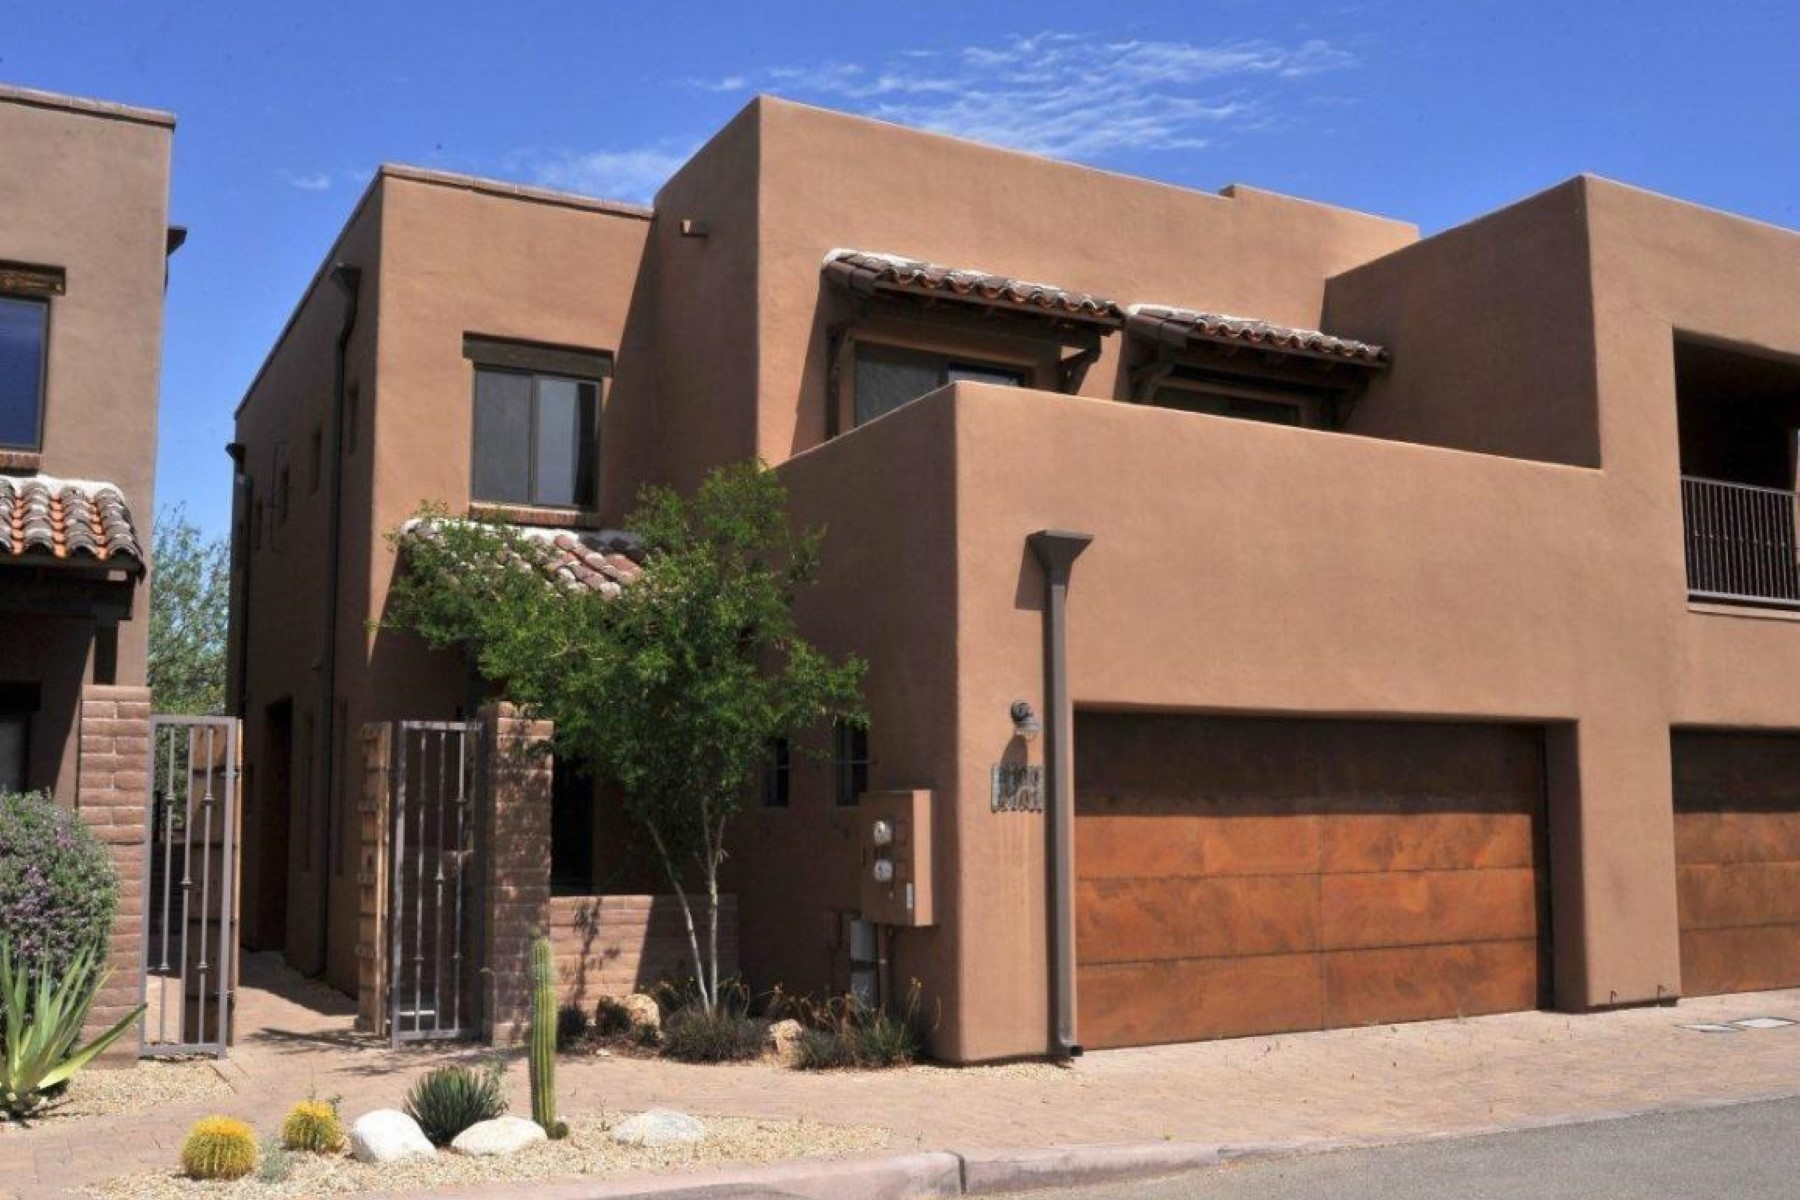 Vivienda unifamiliar por un Venta en Only one owner and rarely lived in, feels just like a brand new home. 4100 N Thurston Lane 101 Tucson, Arizona 85705 Estados Unidos